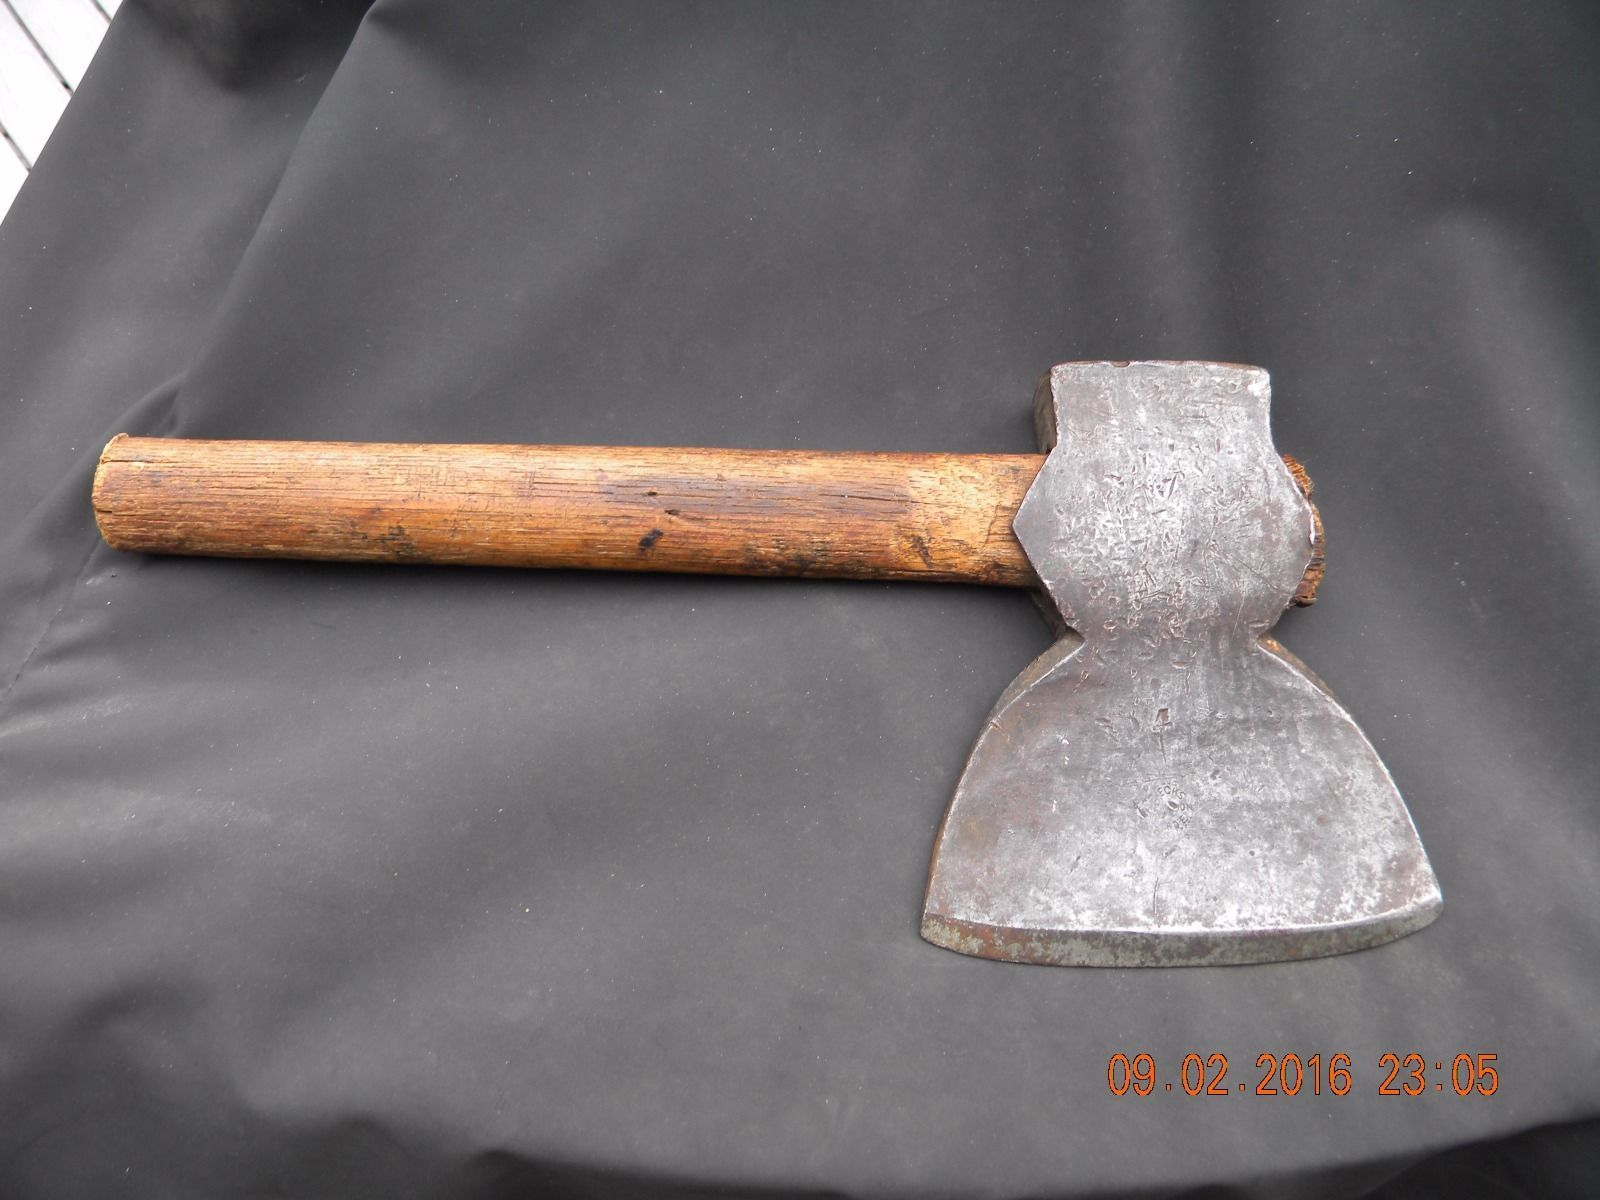 Plumb Axe Makers Marks